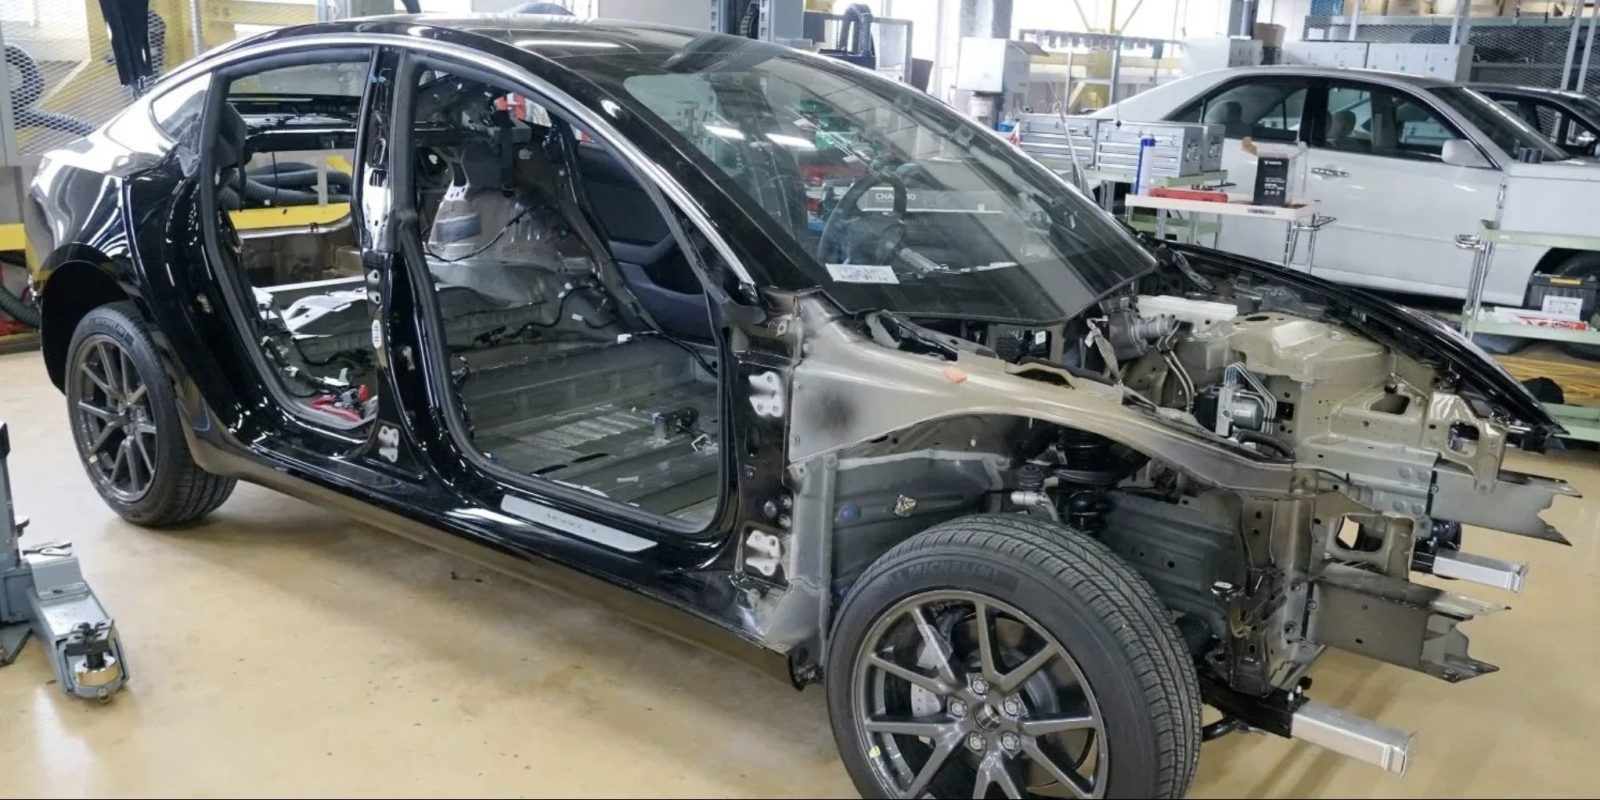 Tesla has '6 years lead over Toyota and VW' in electronics, says new Model 3 teardown